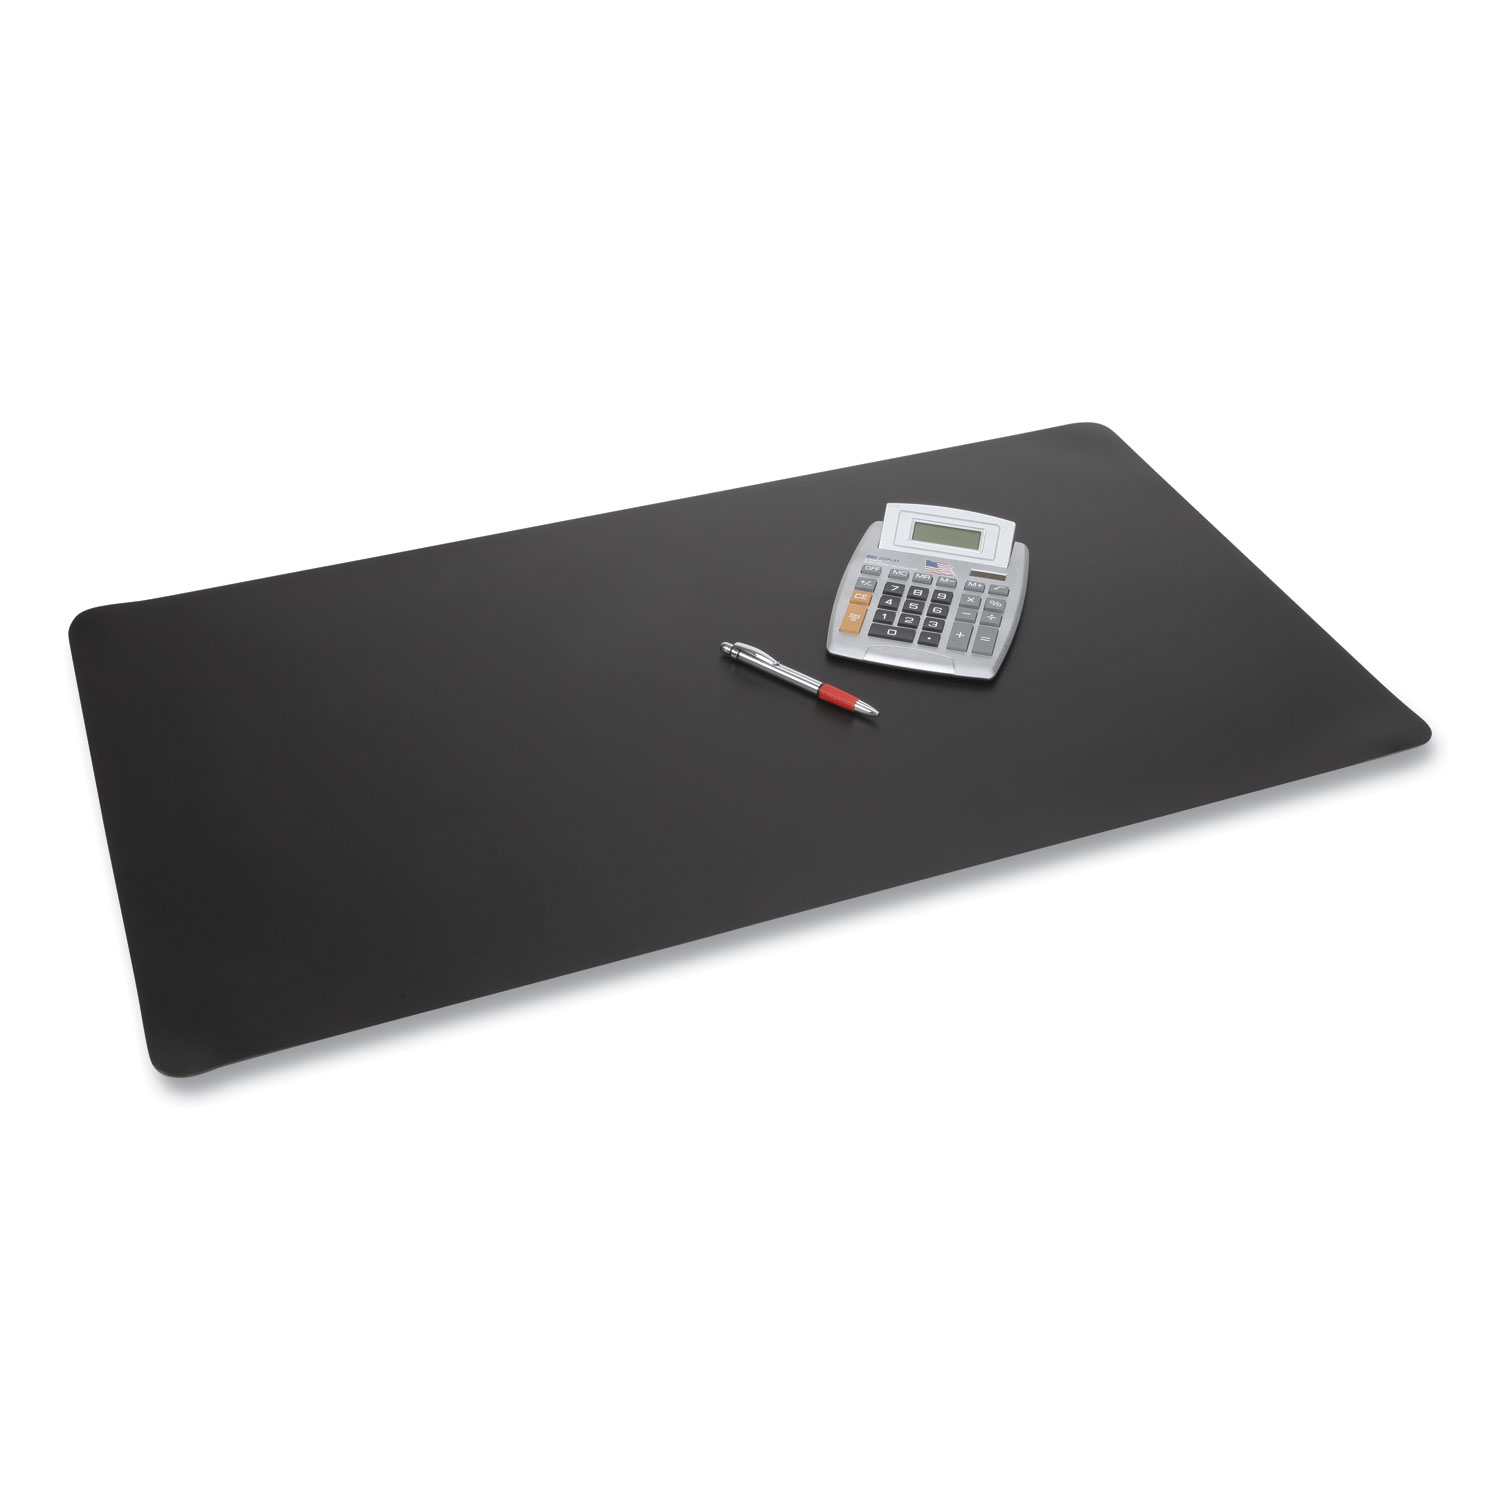 Rhinolin II Desk Pad with Antimicrobial Product Protection, 17 x 12, Black